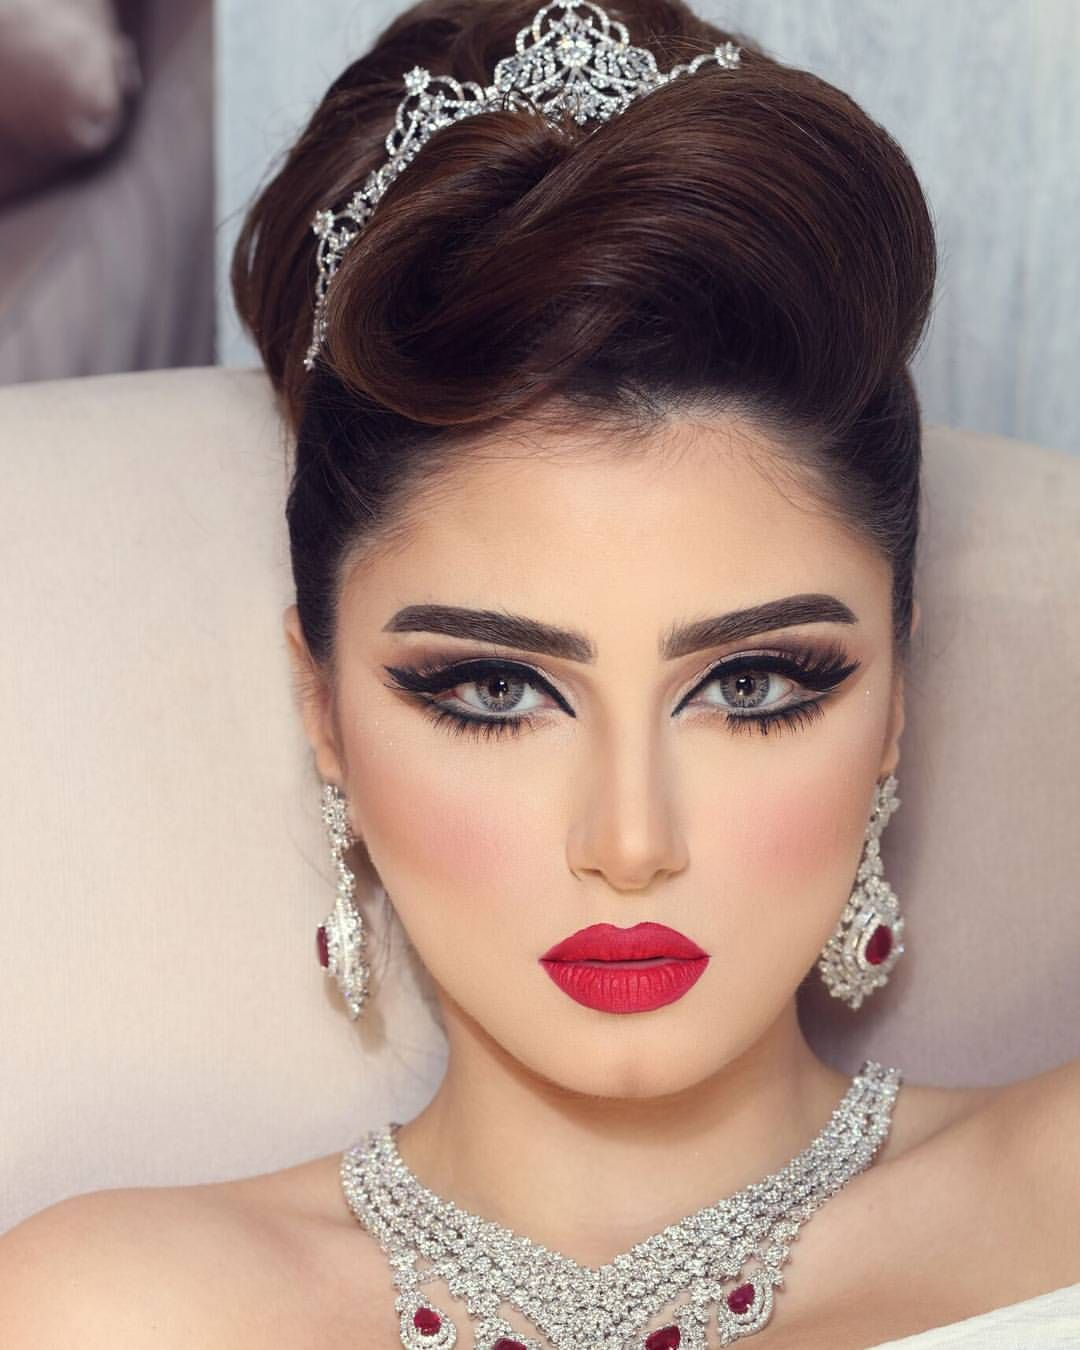 Arabic Hairstyles For Weddings: Pin By Chubby To Chik On My Wedding Makeup In 2019